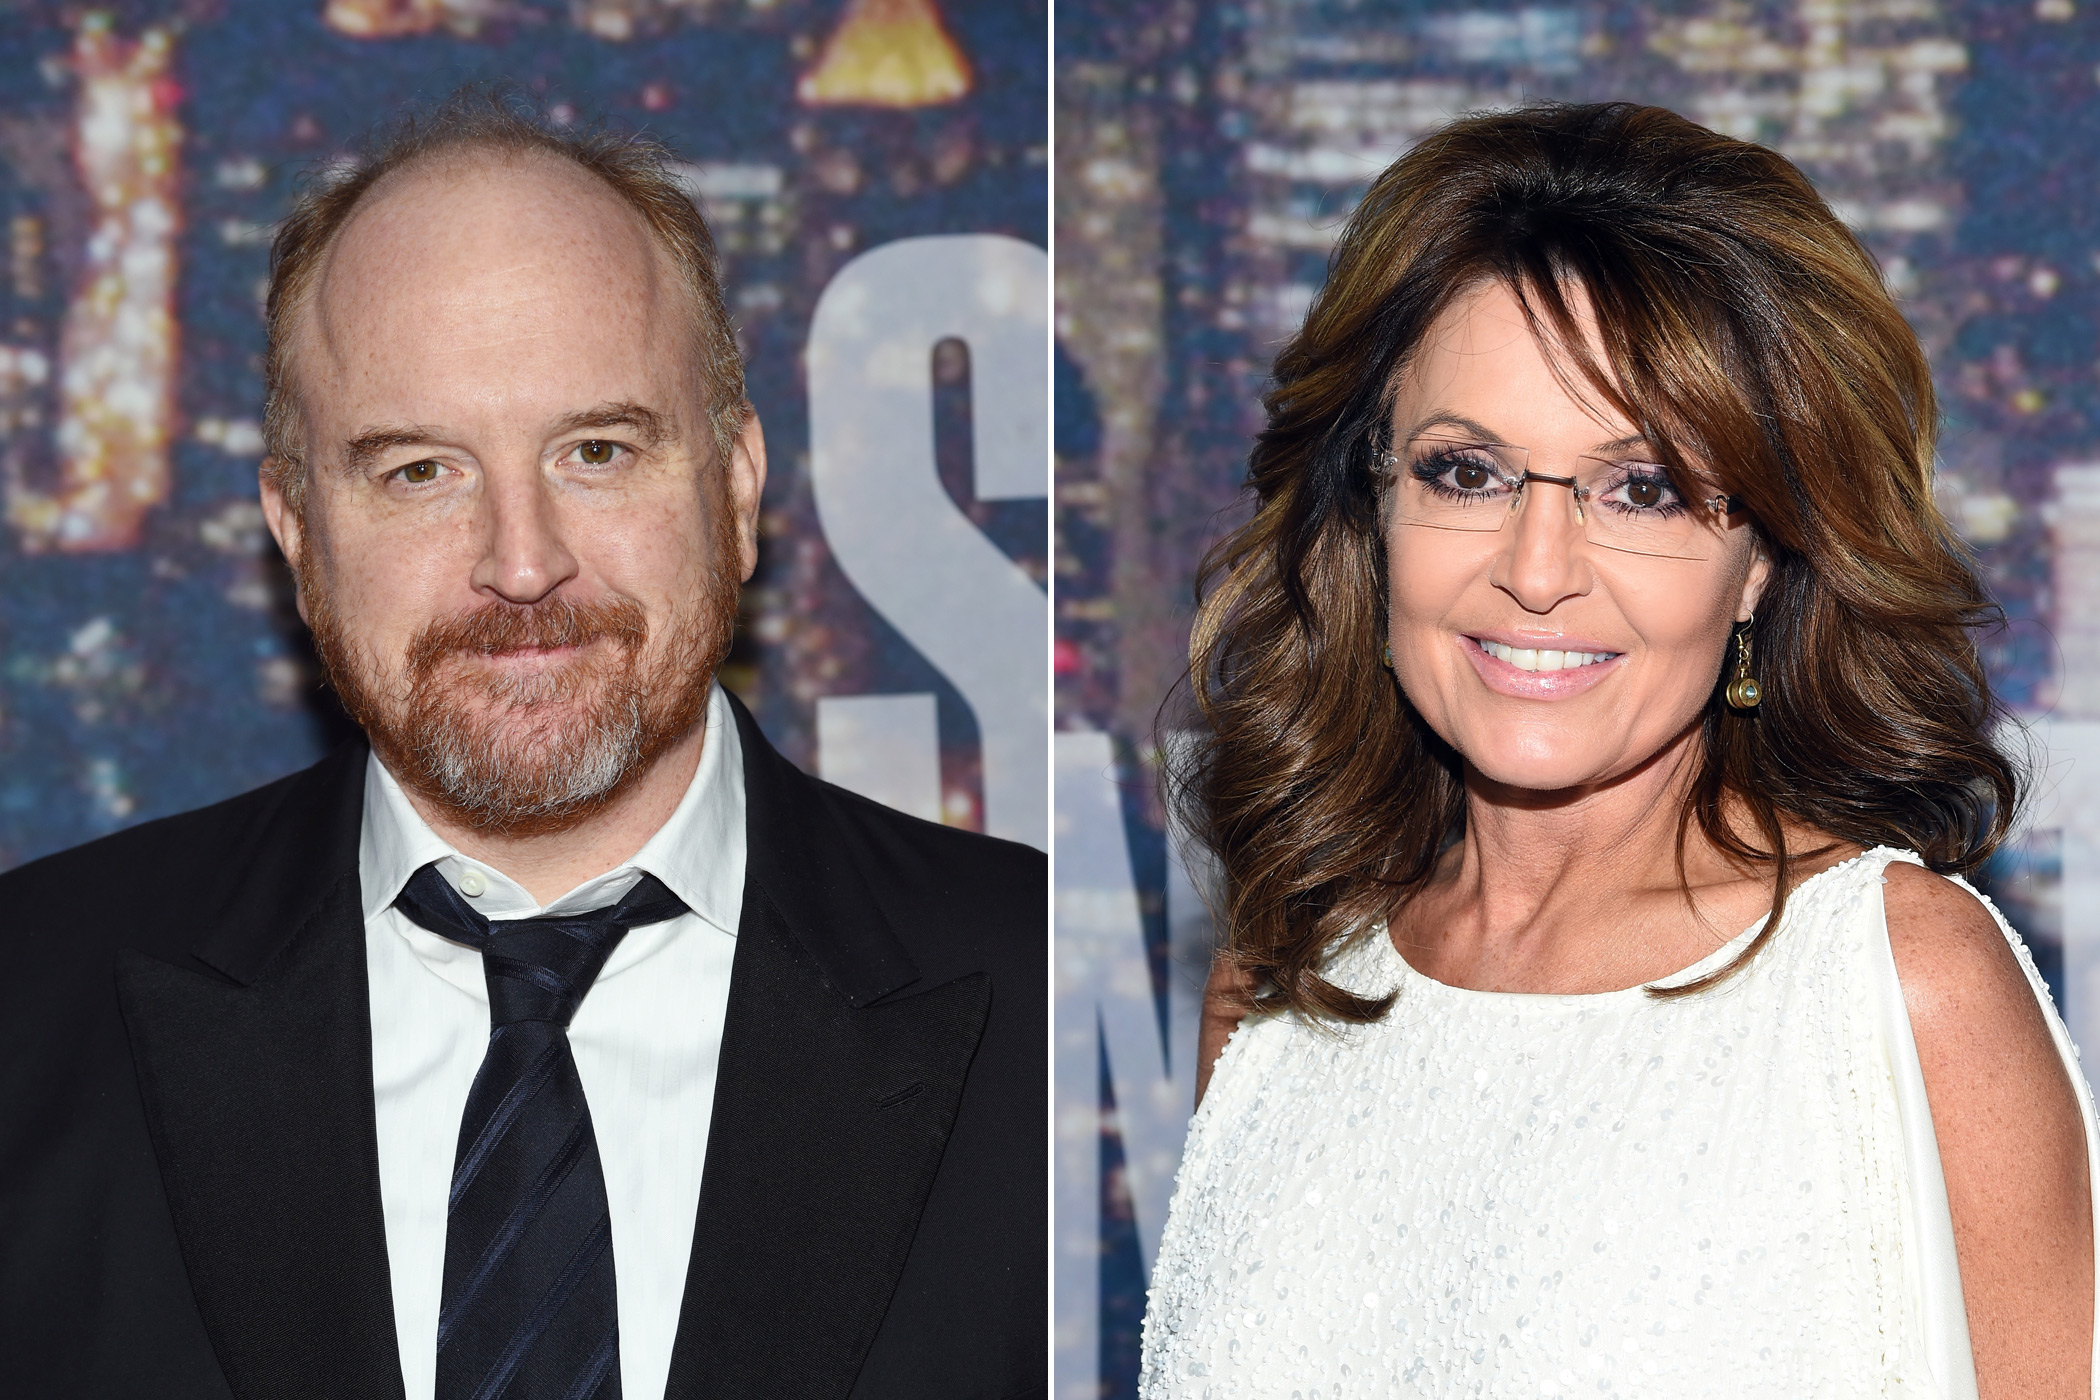 From left: Louis C.K. and Sarah Palin